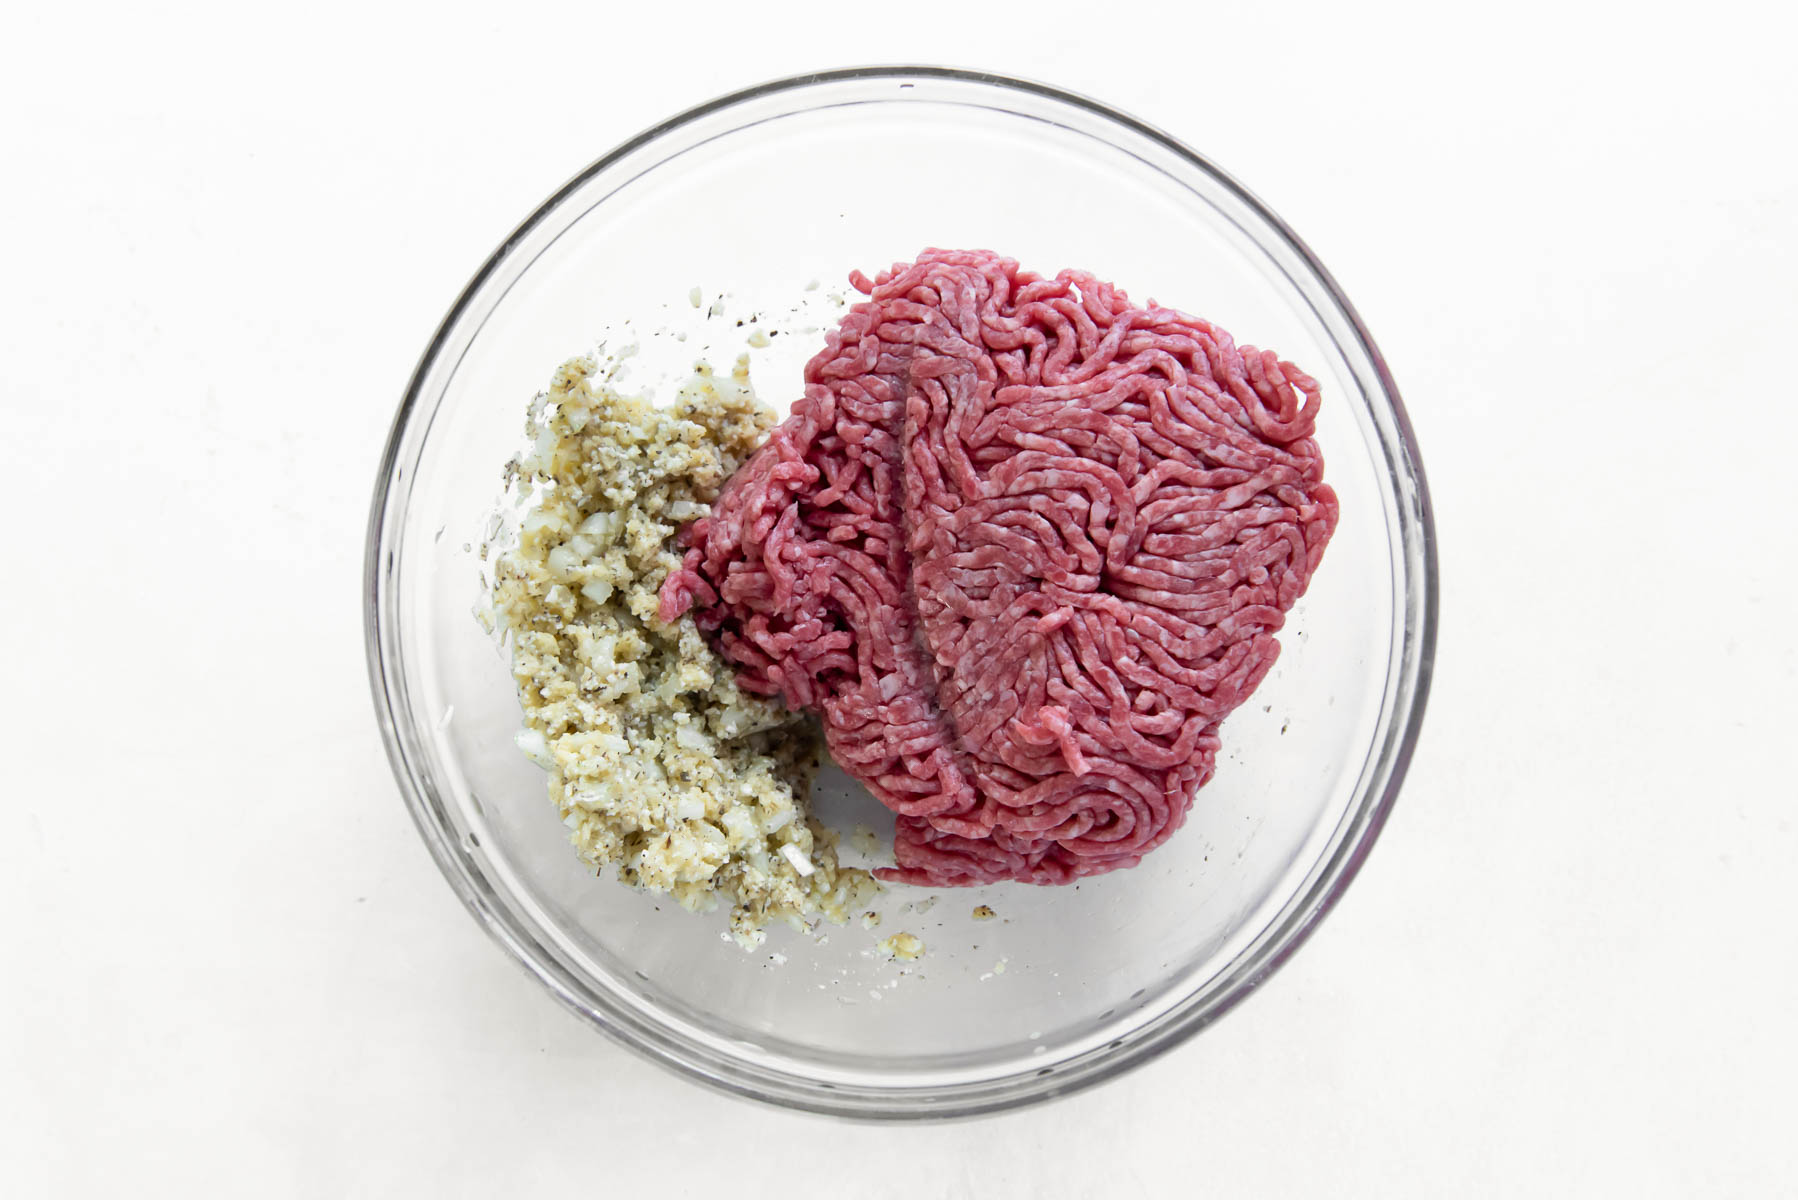 ground beef and other meatball ingredients in a glass bowl